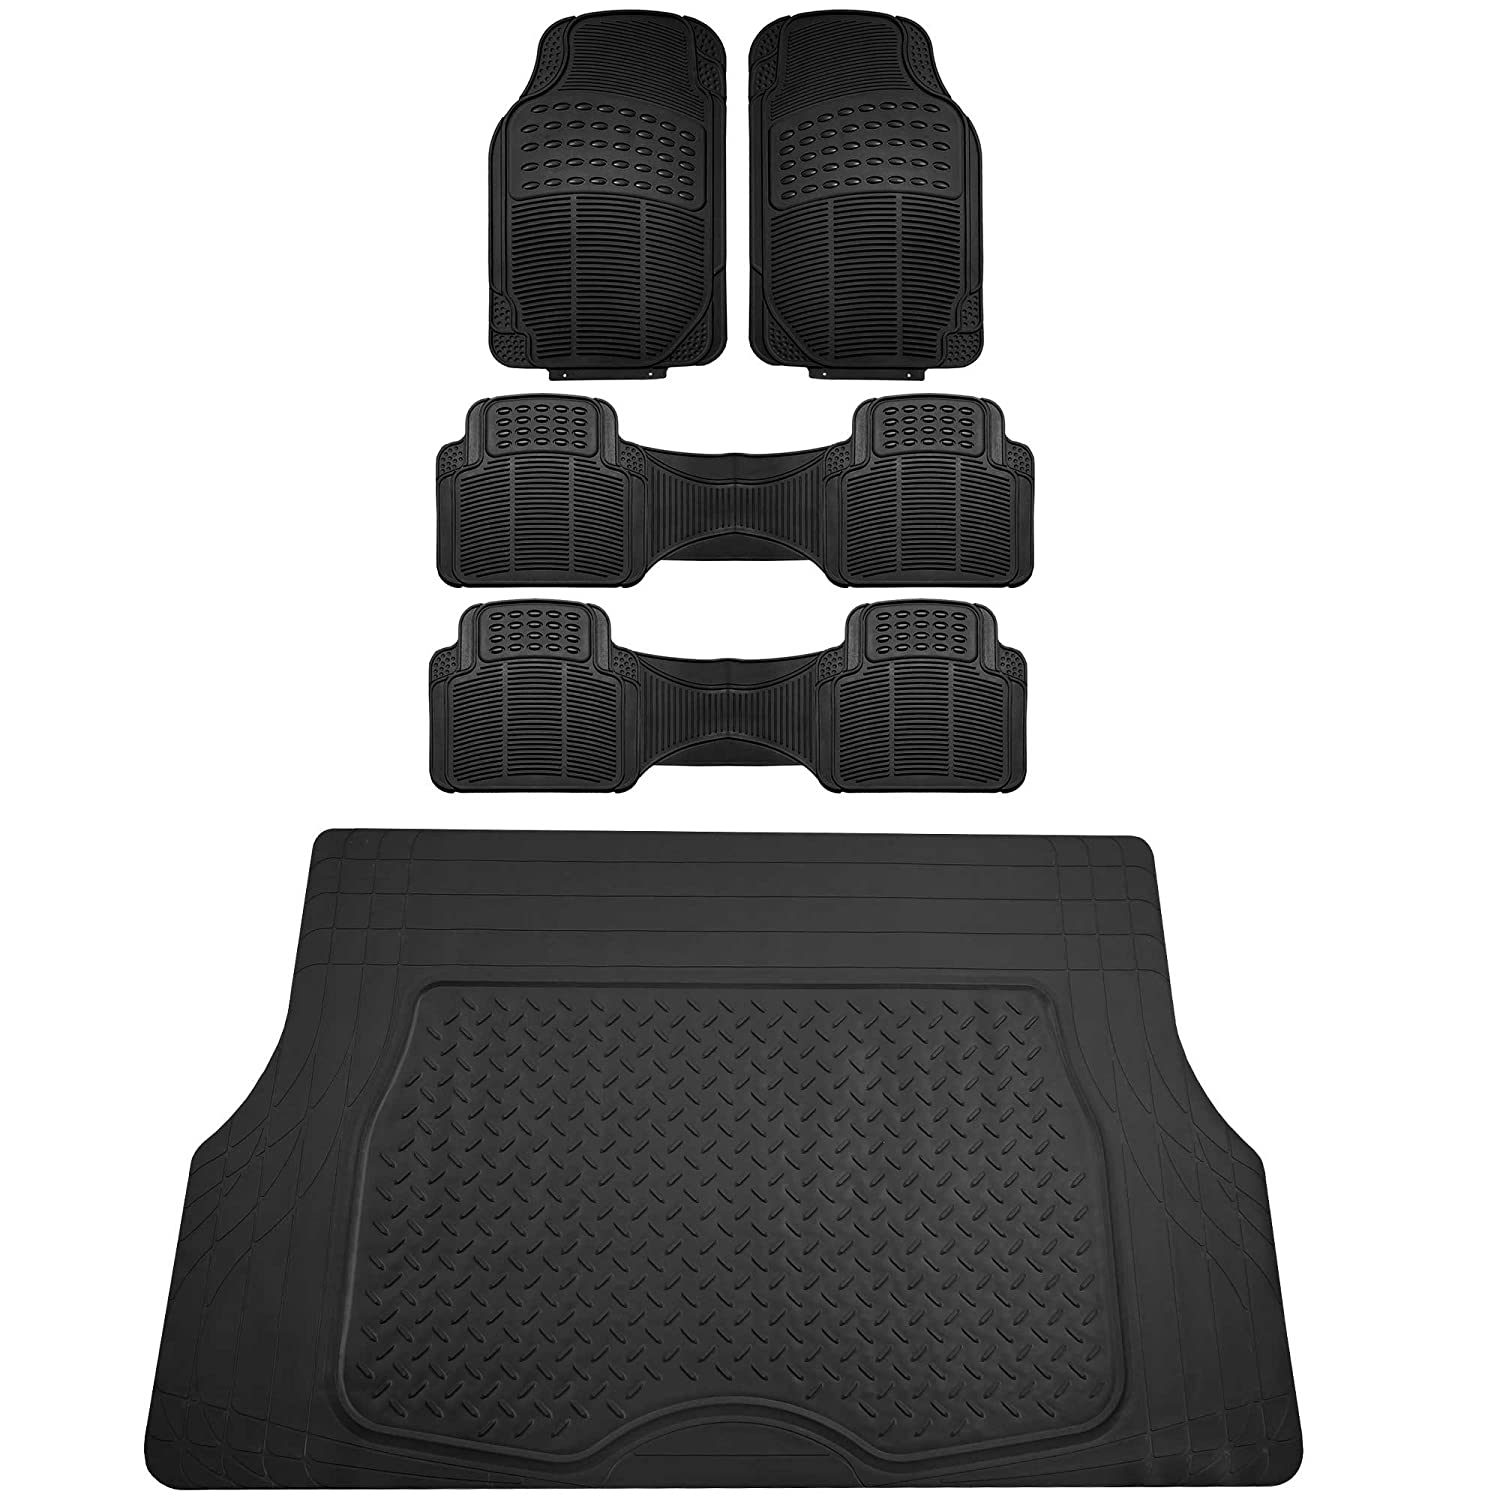 FH Group F11308 All Weather Vinyl Floor Mats Gray Color Full Set Trimmable Custom Fit